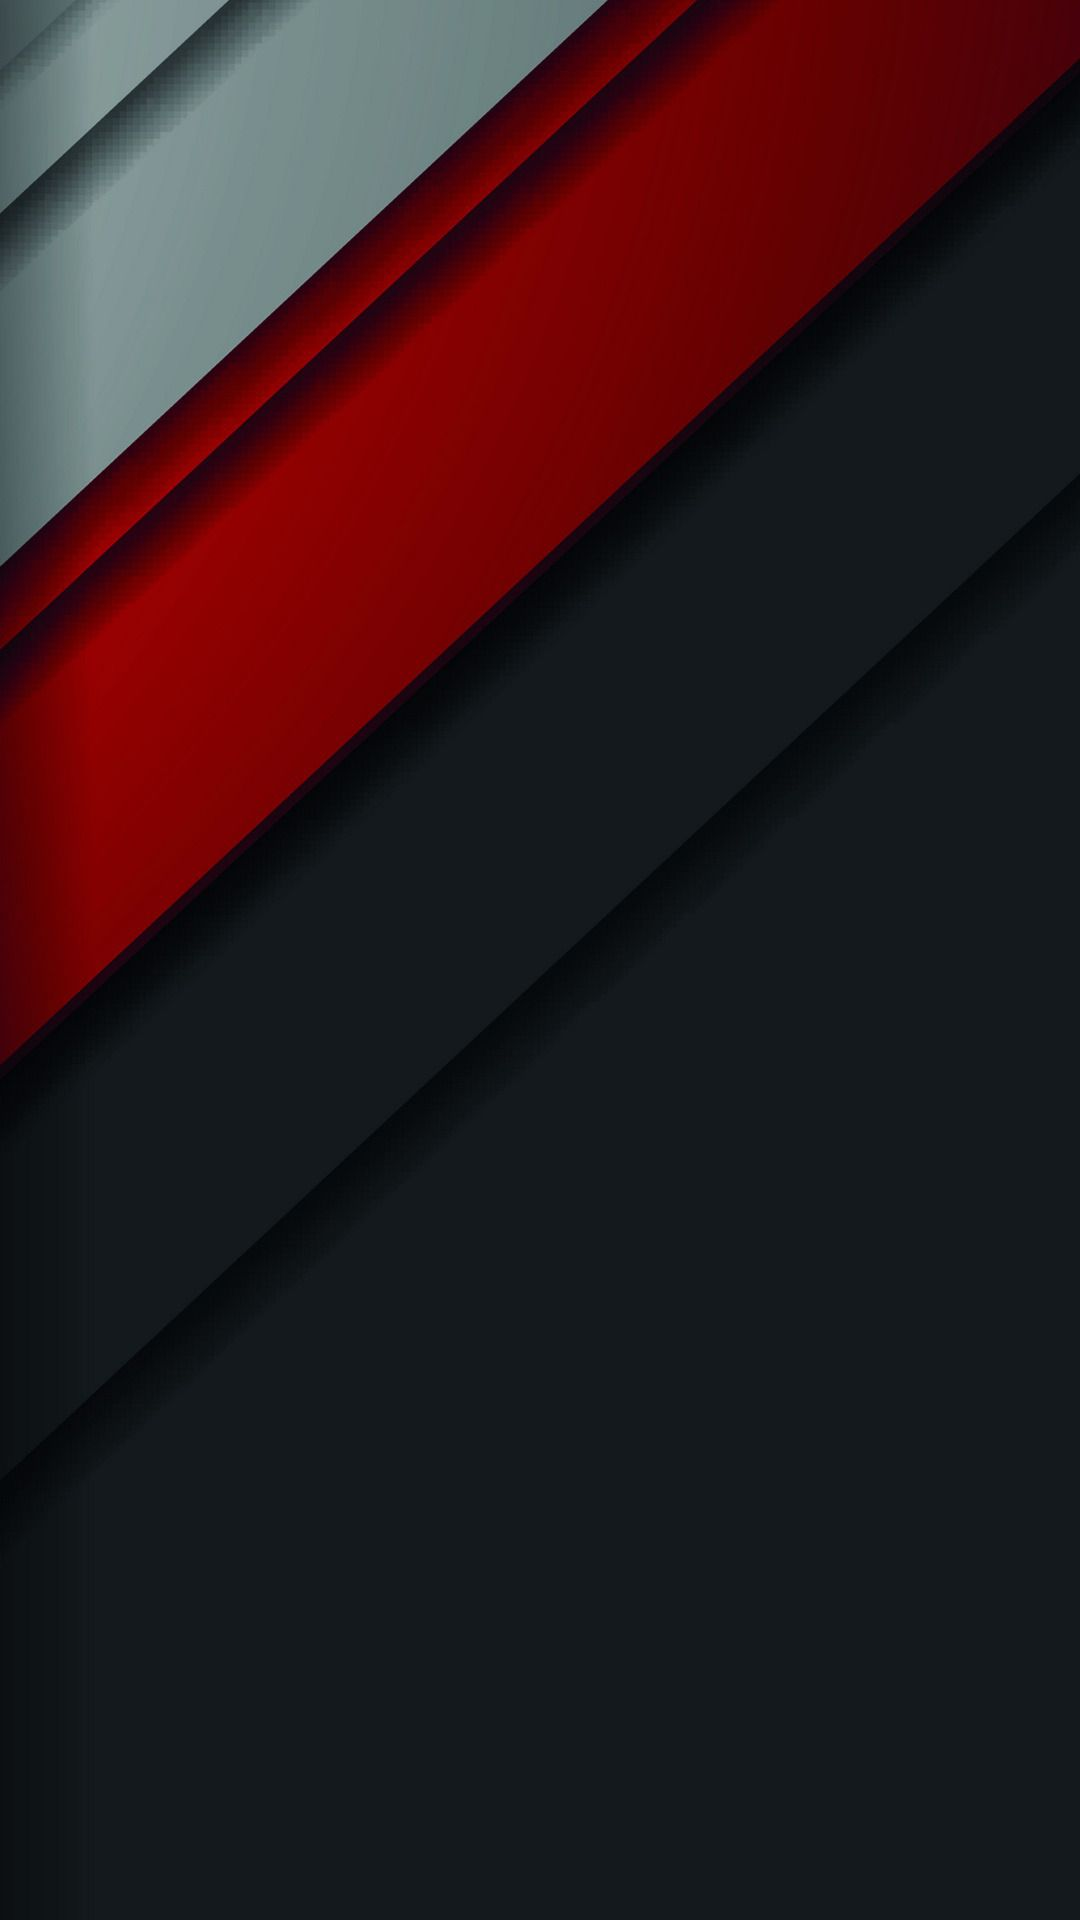 e5285561e826bf Red and Black iPhone Wallpapers - Top Free Red and Black iPhone ...